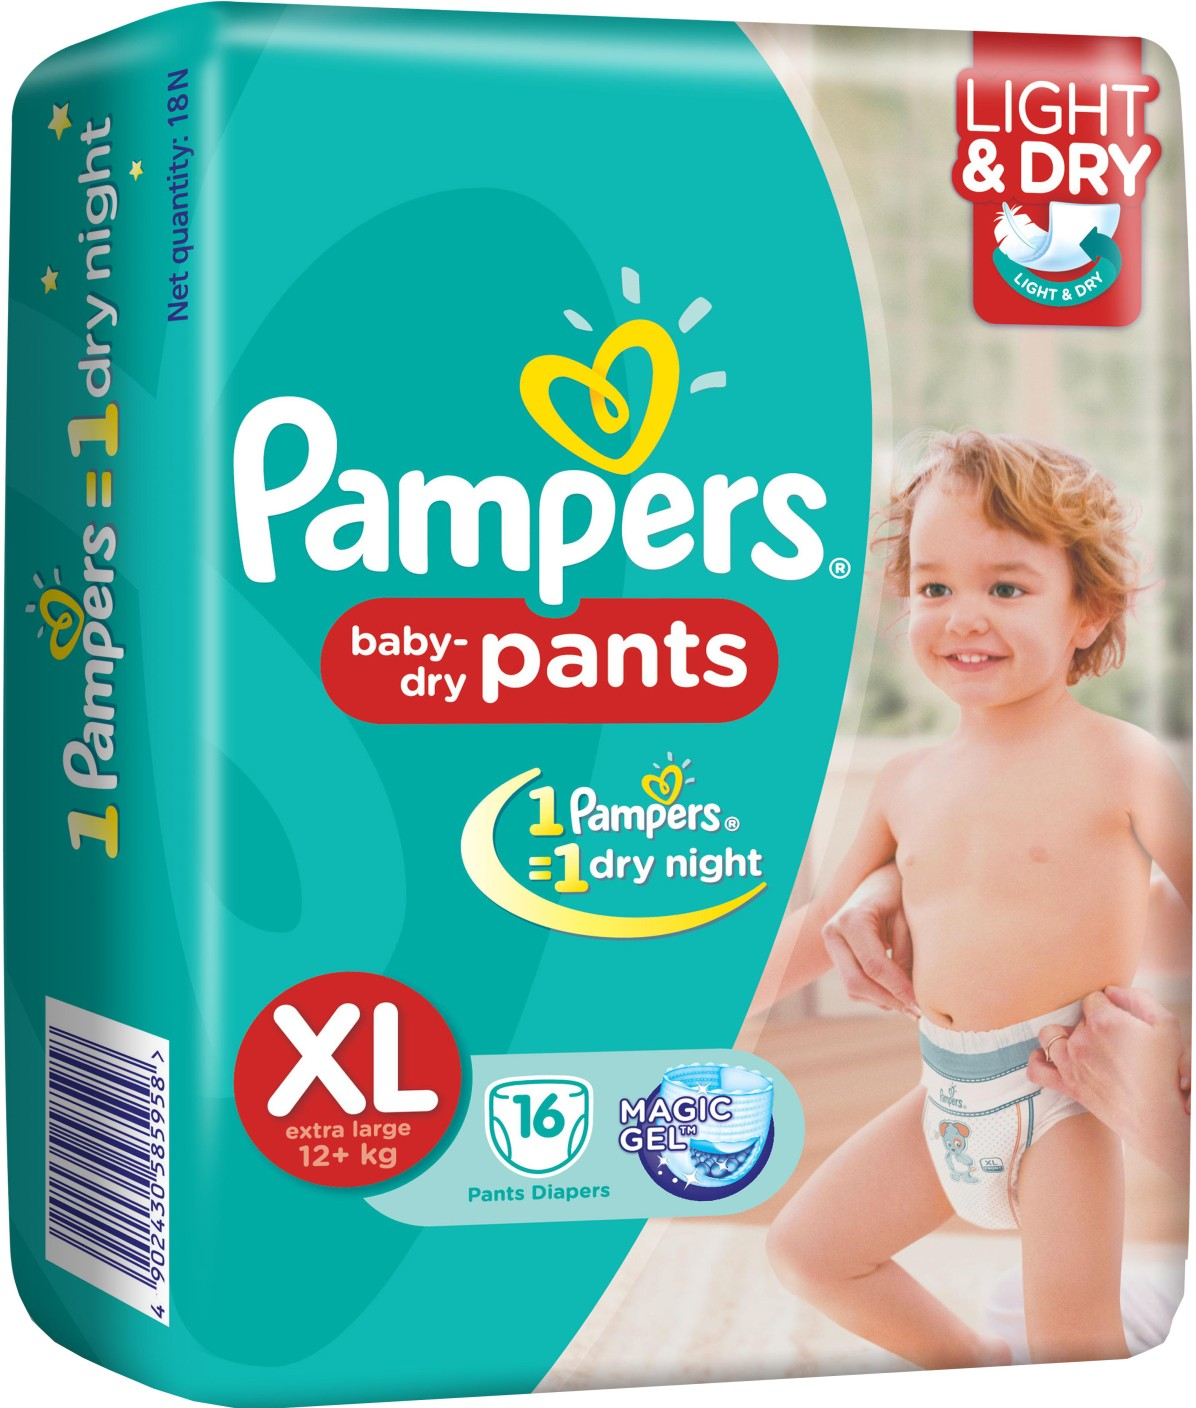 Pampers Pants Diaper Extra Large Size Buy 16 Pampers